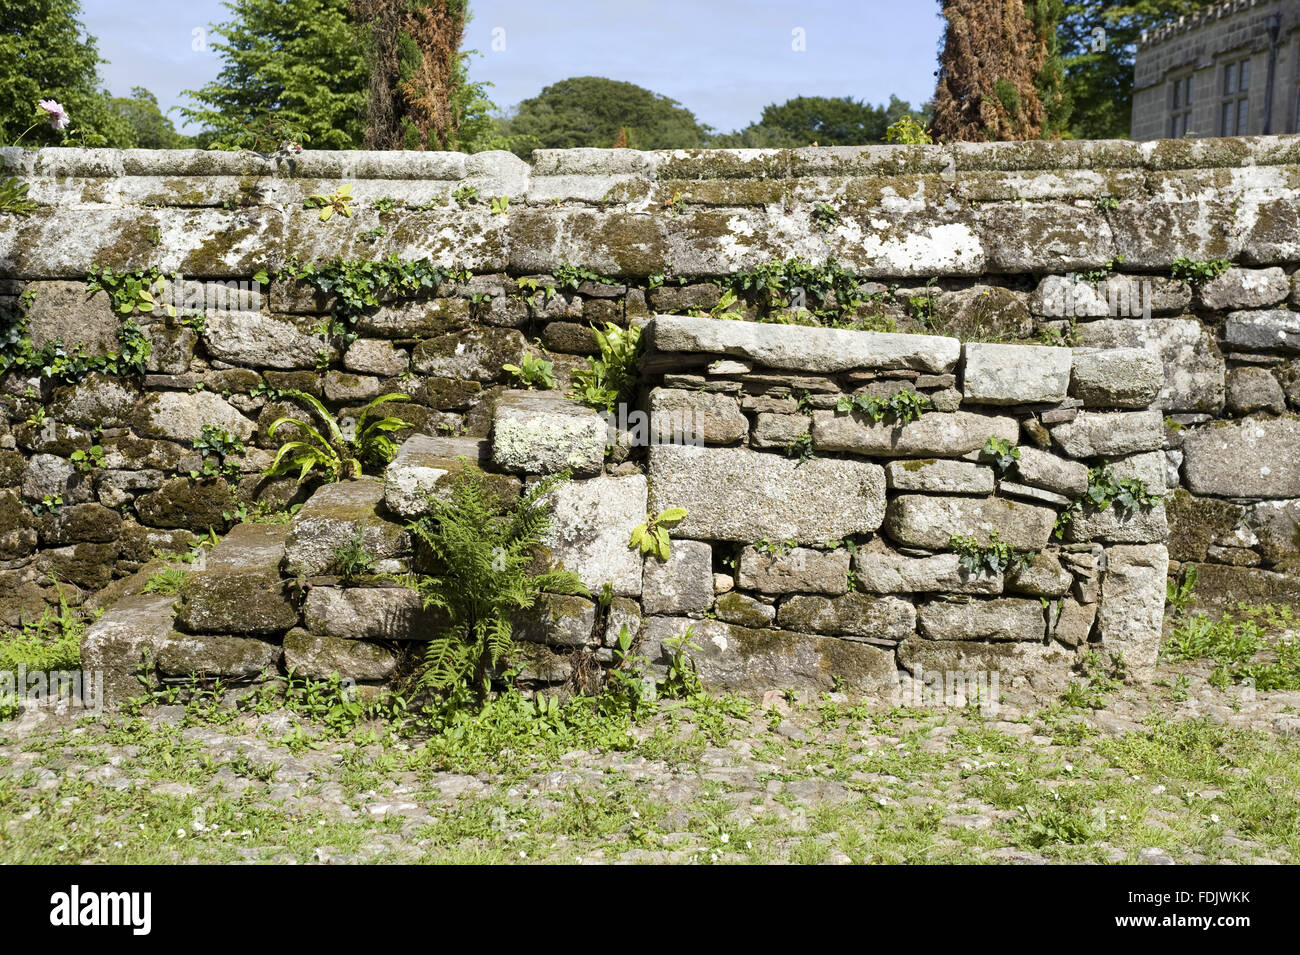 Wall Mounting Stock Photos & Wall Mounting Stock Images - Alamy